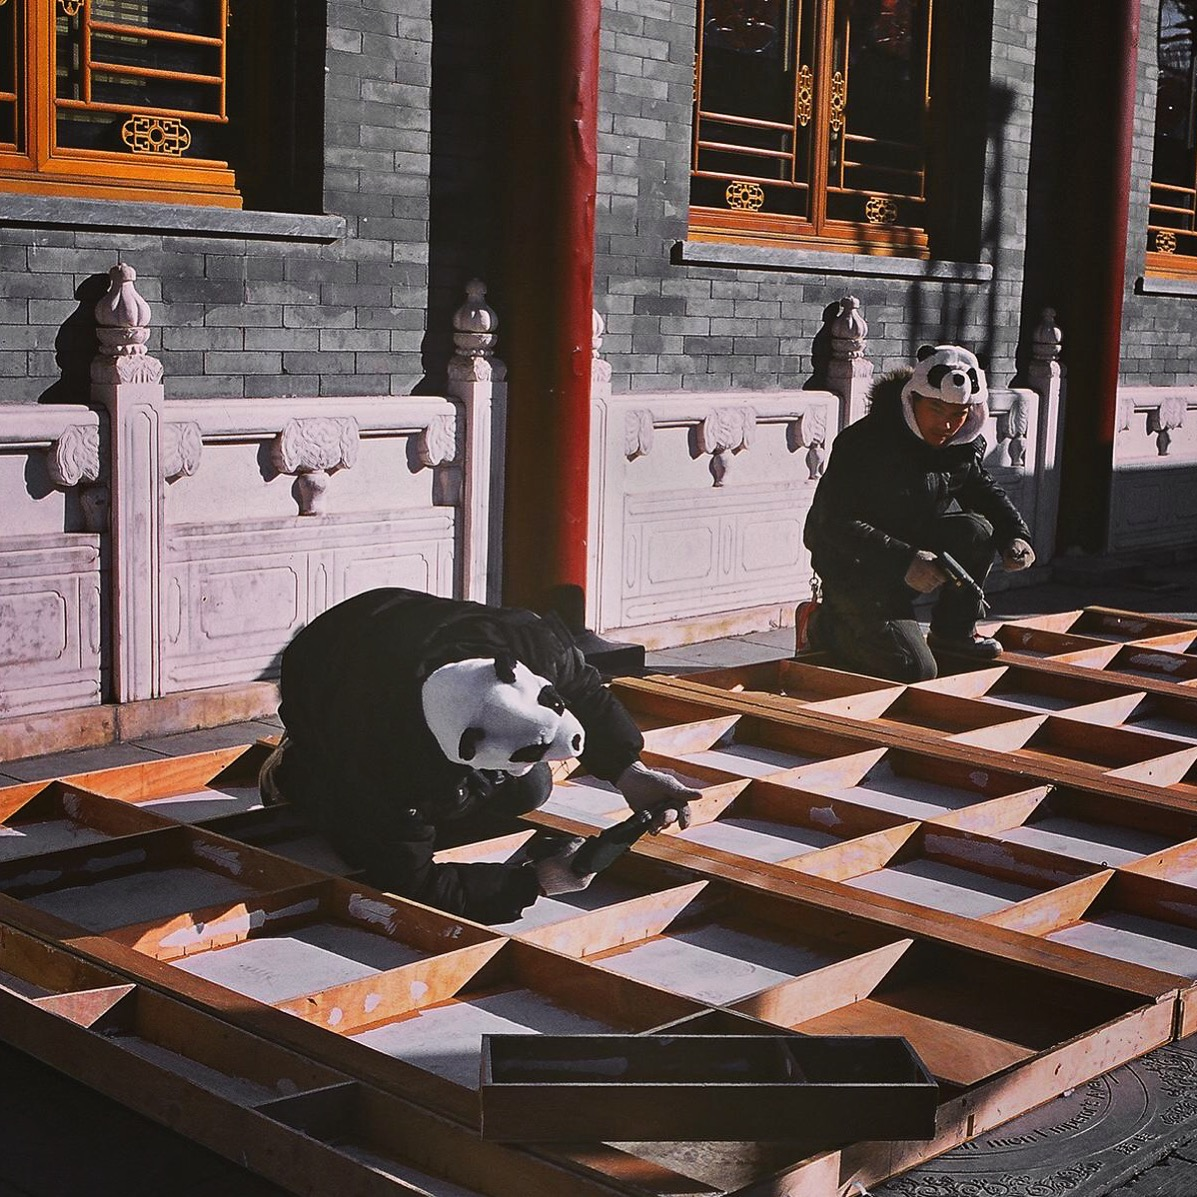 Migrant workers wear panda hats on a freezing cold day in Beijing.